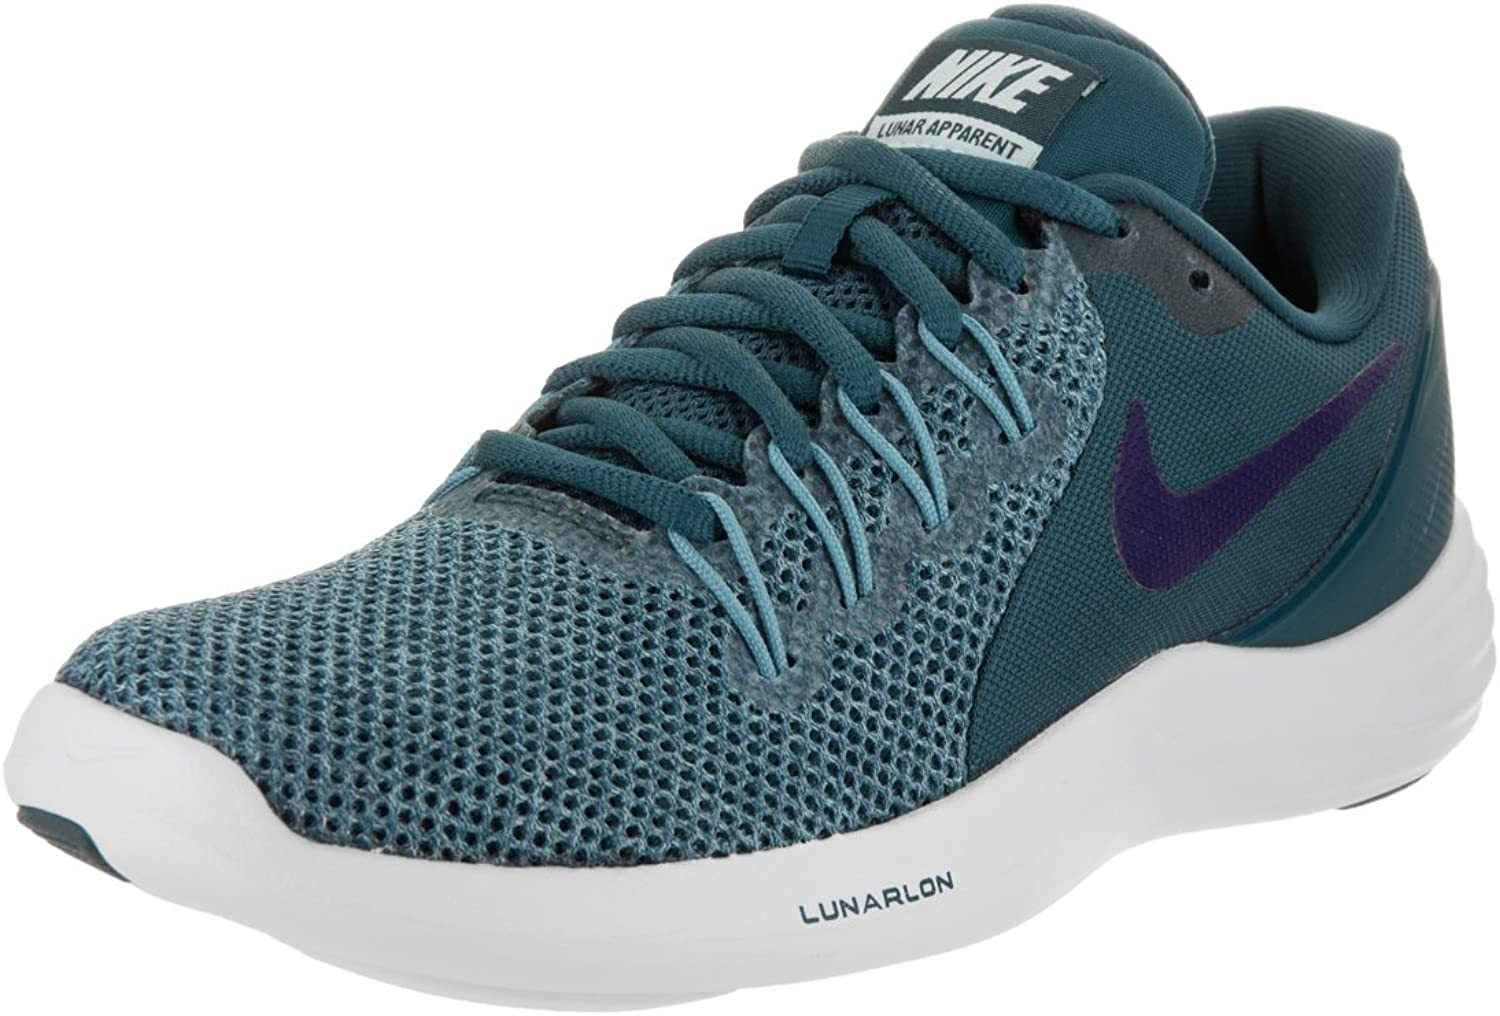 Nike Women's Lunar Apparent Running shoes